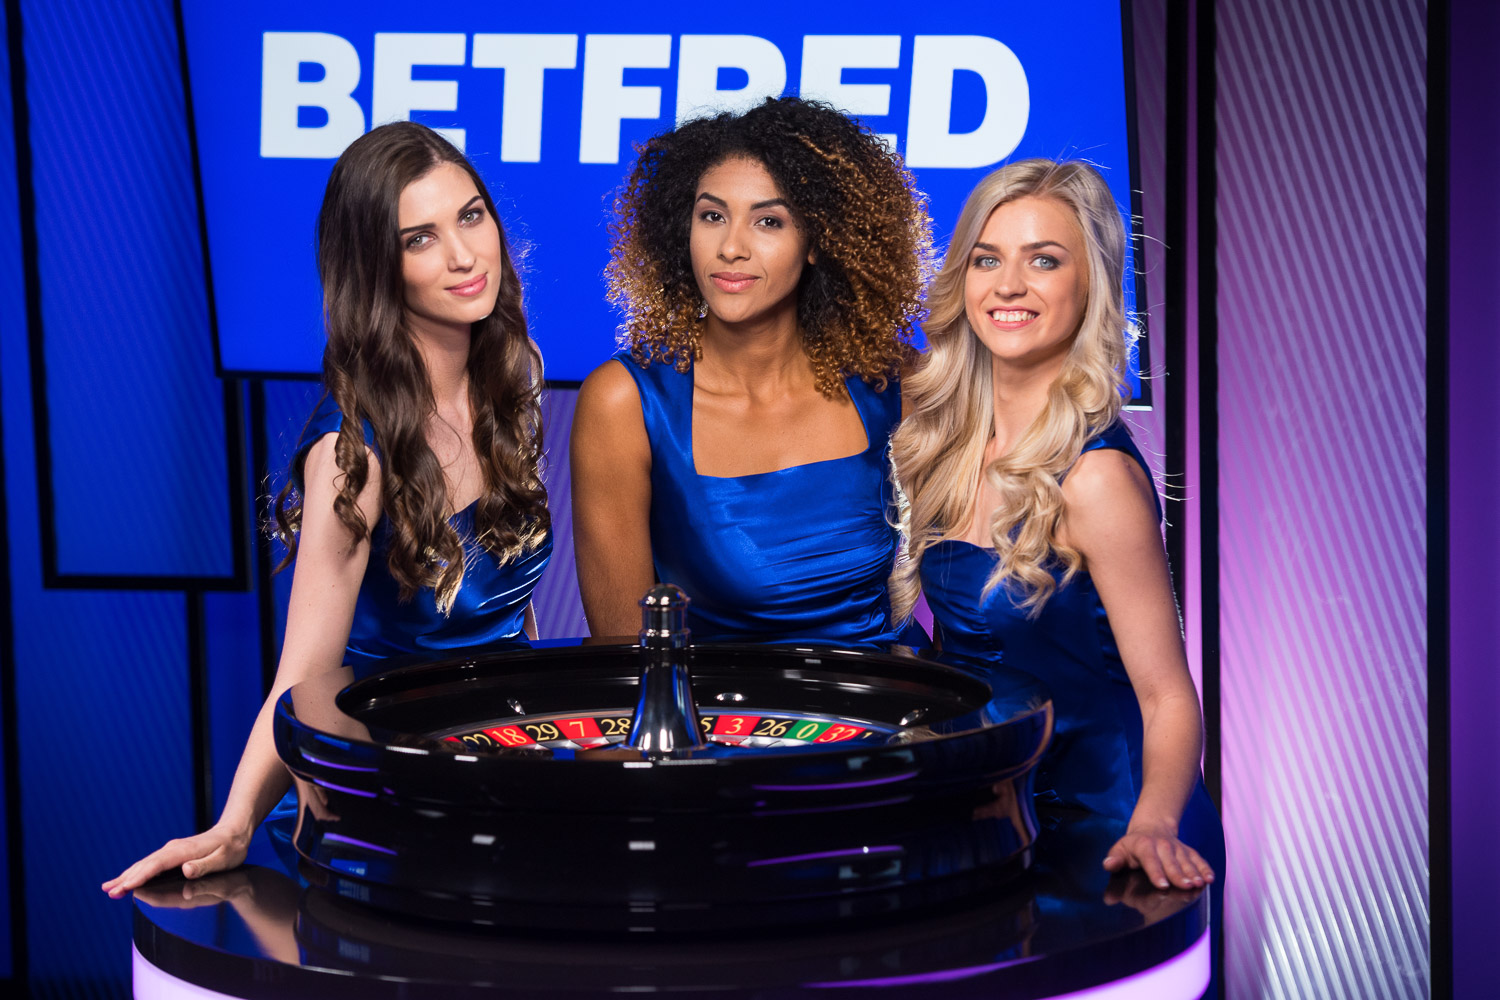 Betfred live casino games Riga studios gaming online European Commercial Photography